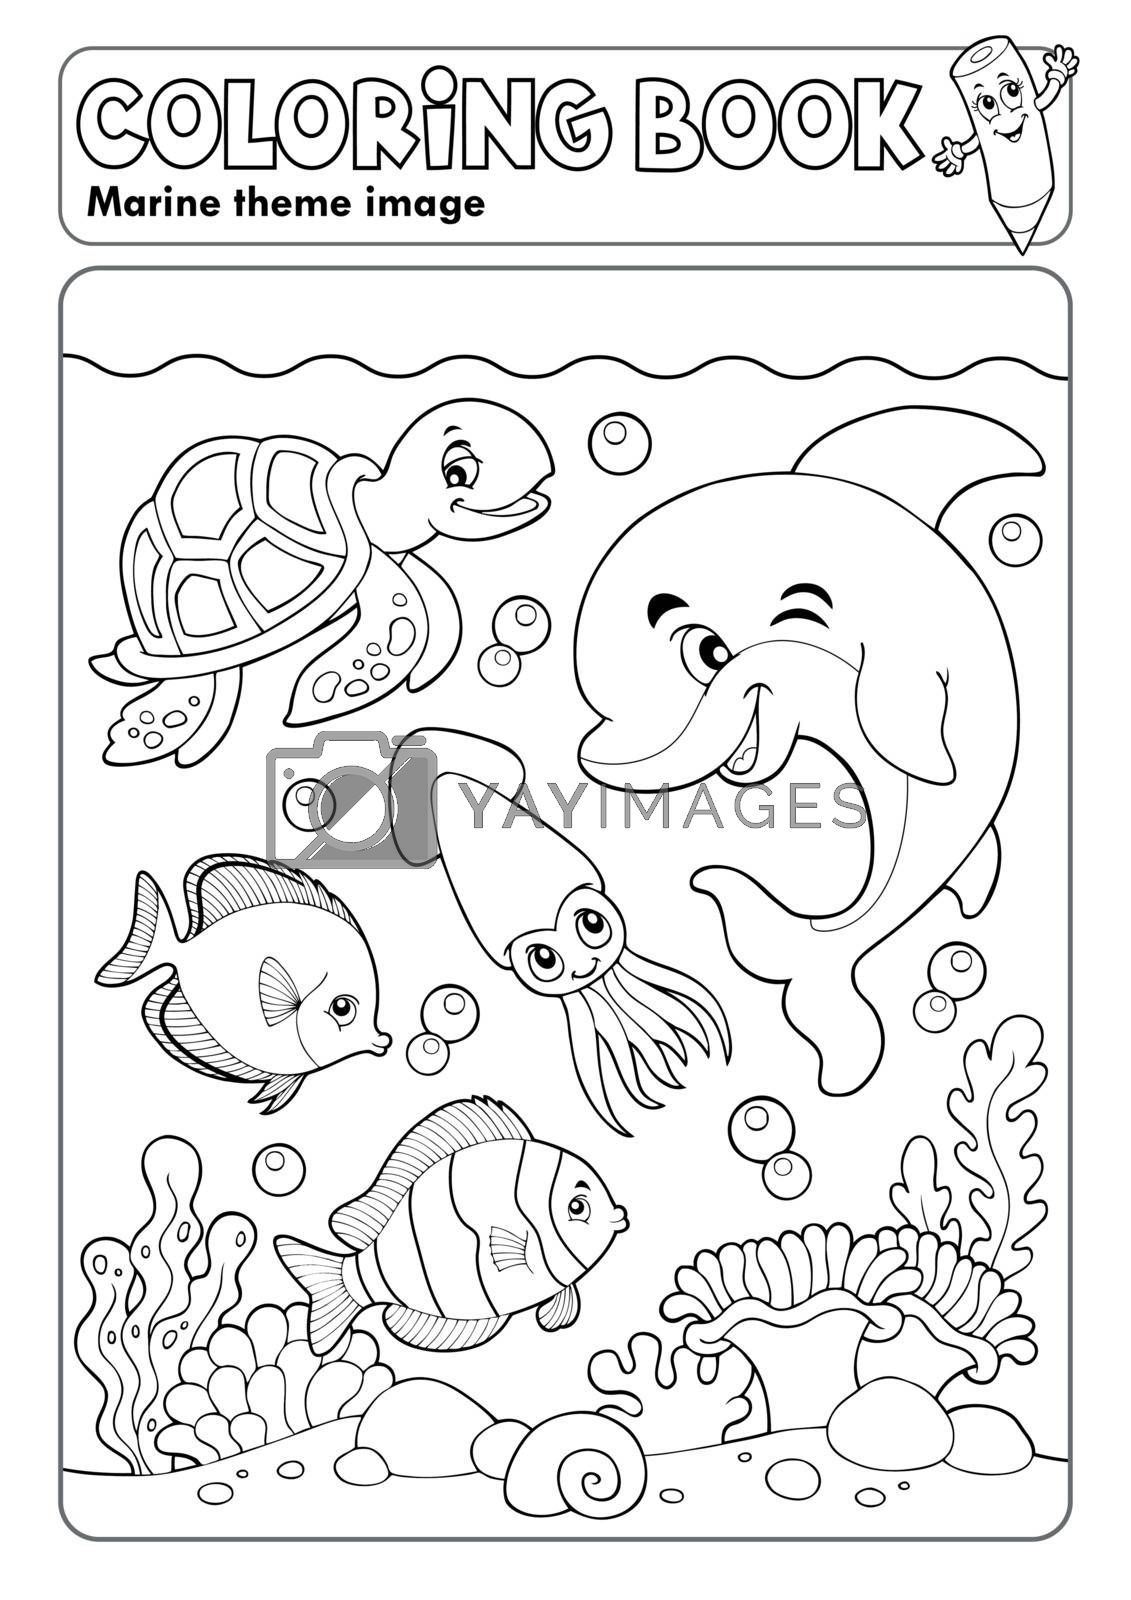 Coloring book marine life theme 3 - eps10 vector illustration.